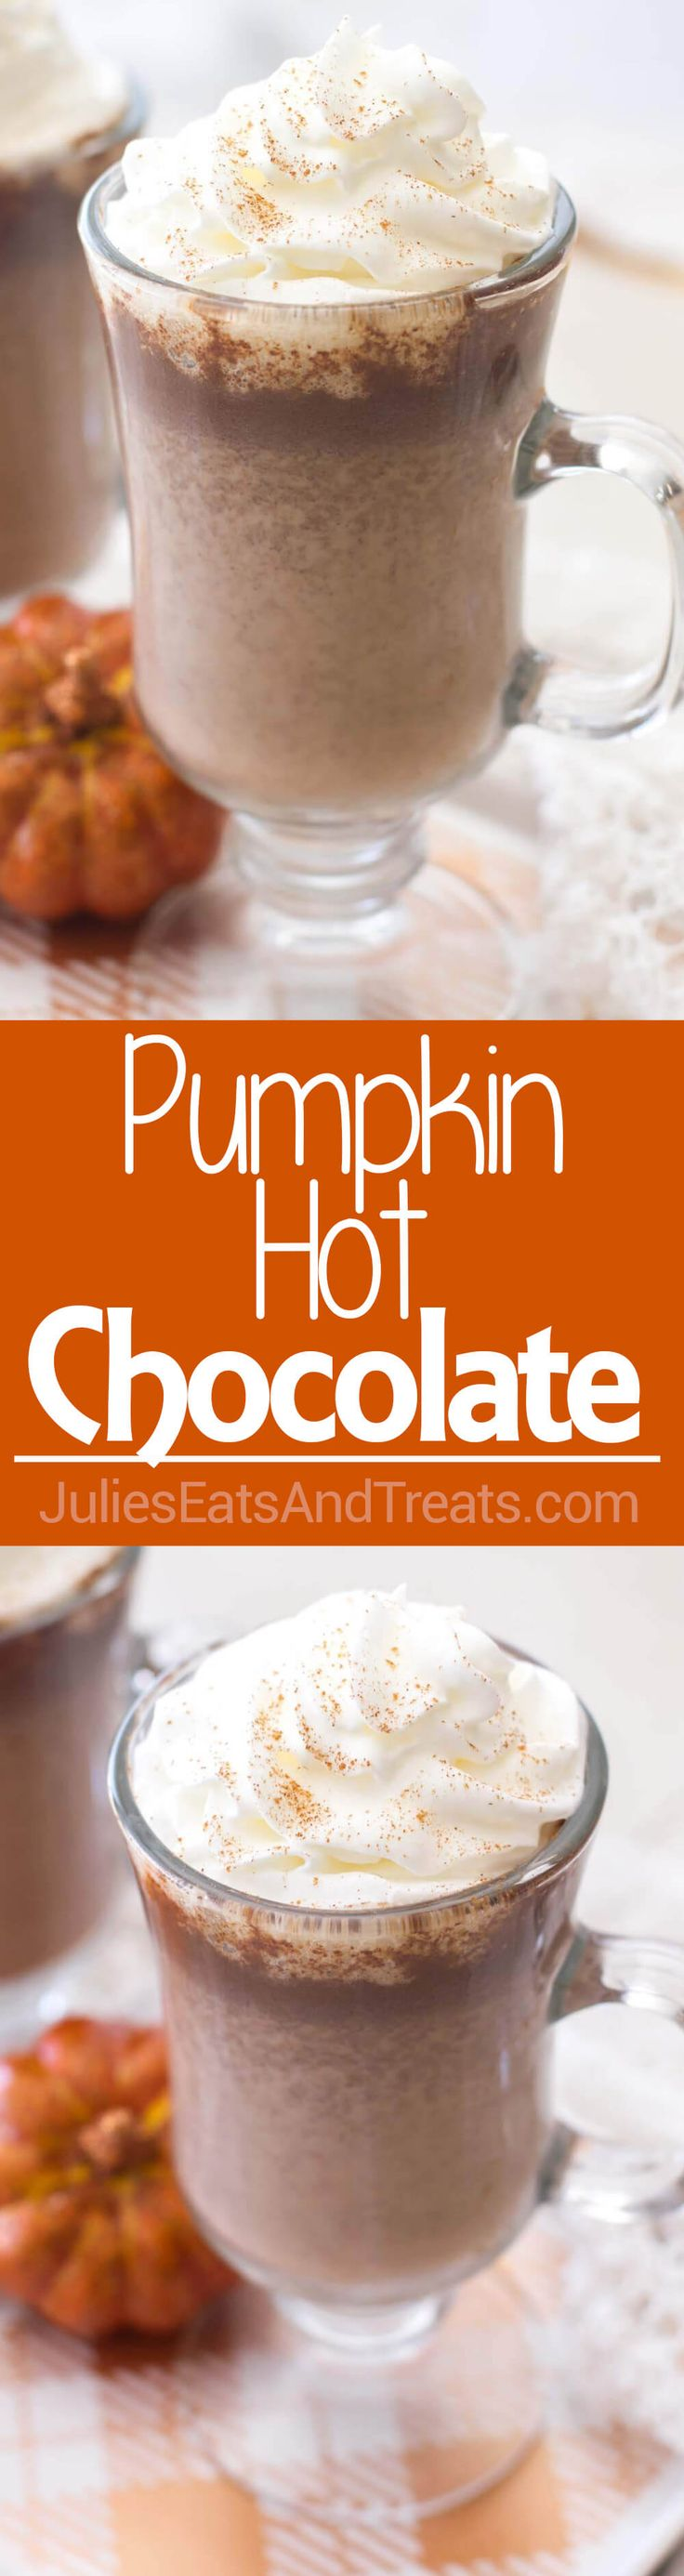 Pumpkin Hot Chocolate ~ Homemade Pumpkin Hot Chocolate Recipe Uses Real Pumpkin Puree and Pumpkin Pie Spices to Add a Fall Spin to a Classic Drink! via @julieseats